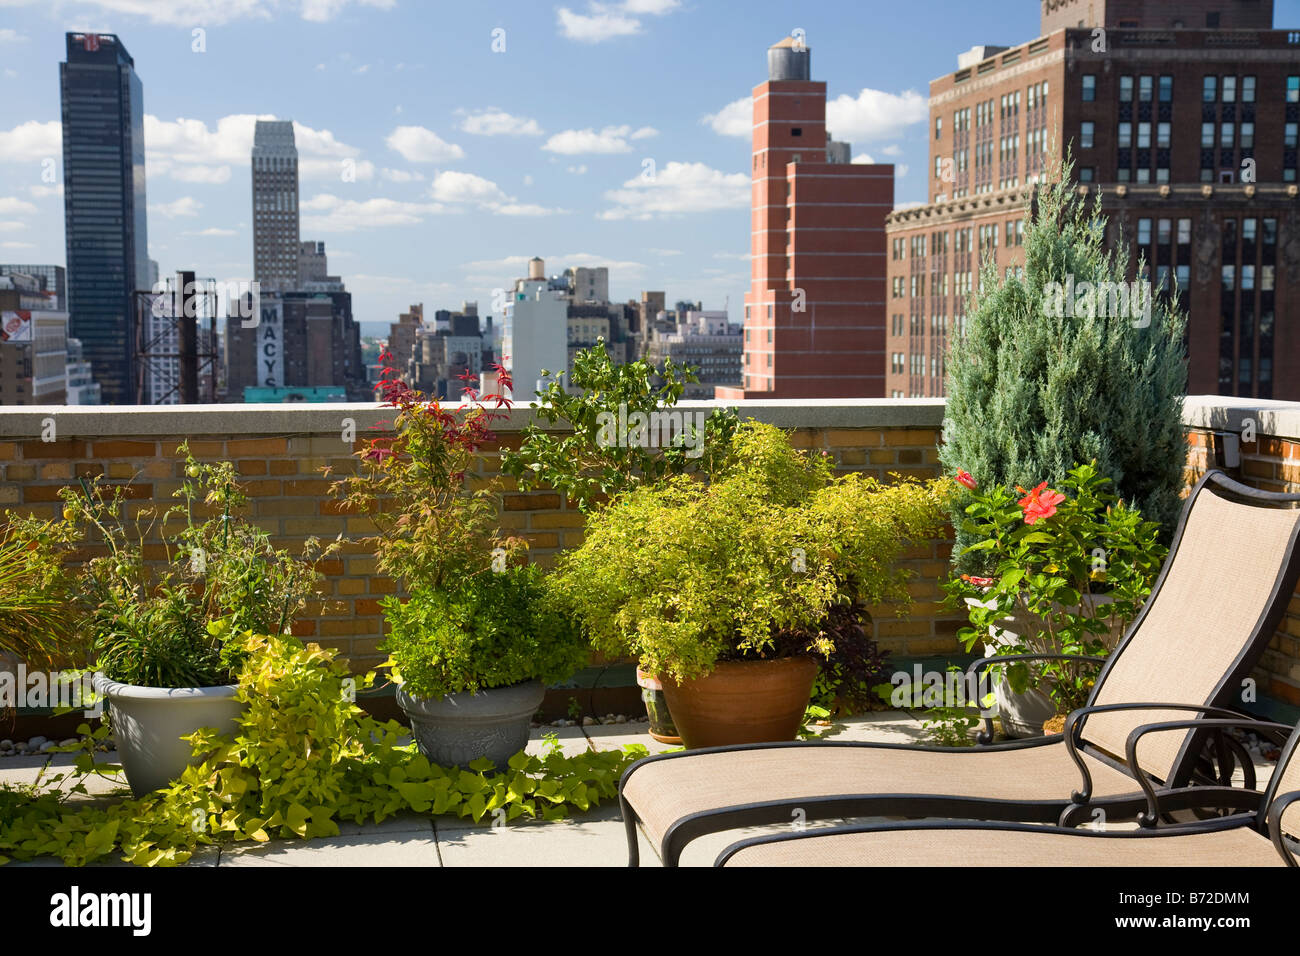 urban rooftop garden nyc stock photo royalty free image 21567636 alamy. Black Bedroom Furniture Sets. Home Design Ideas